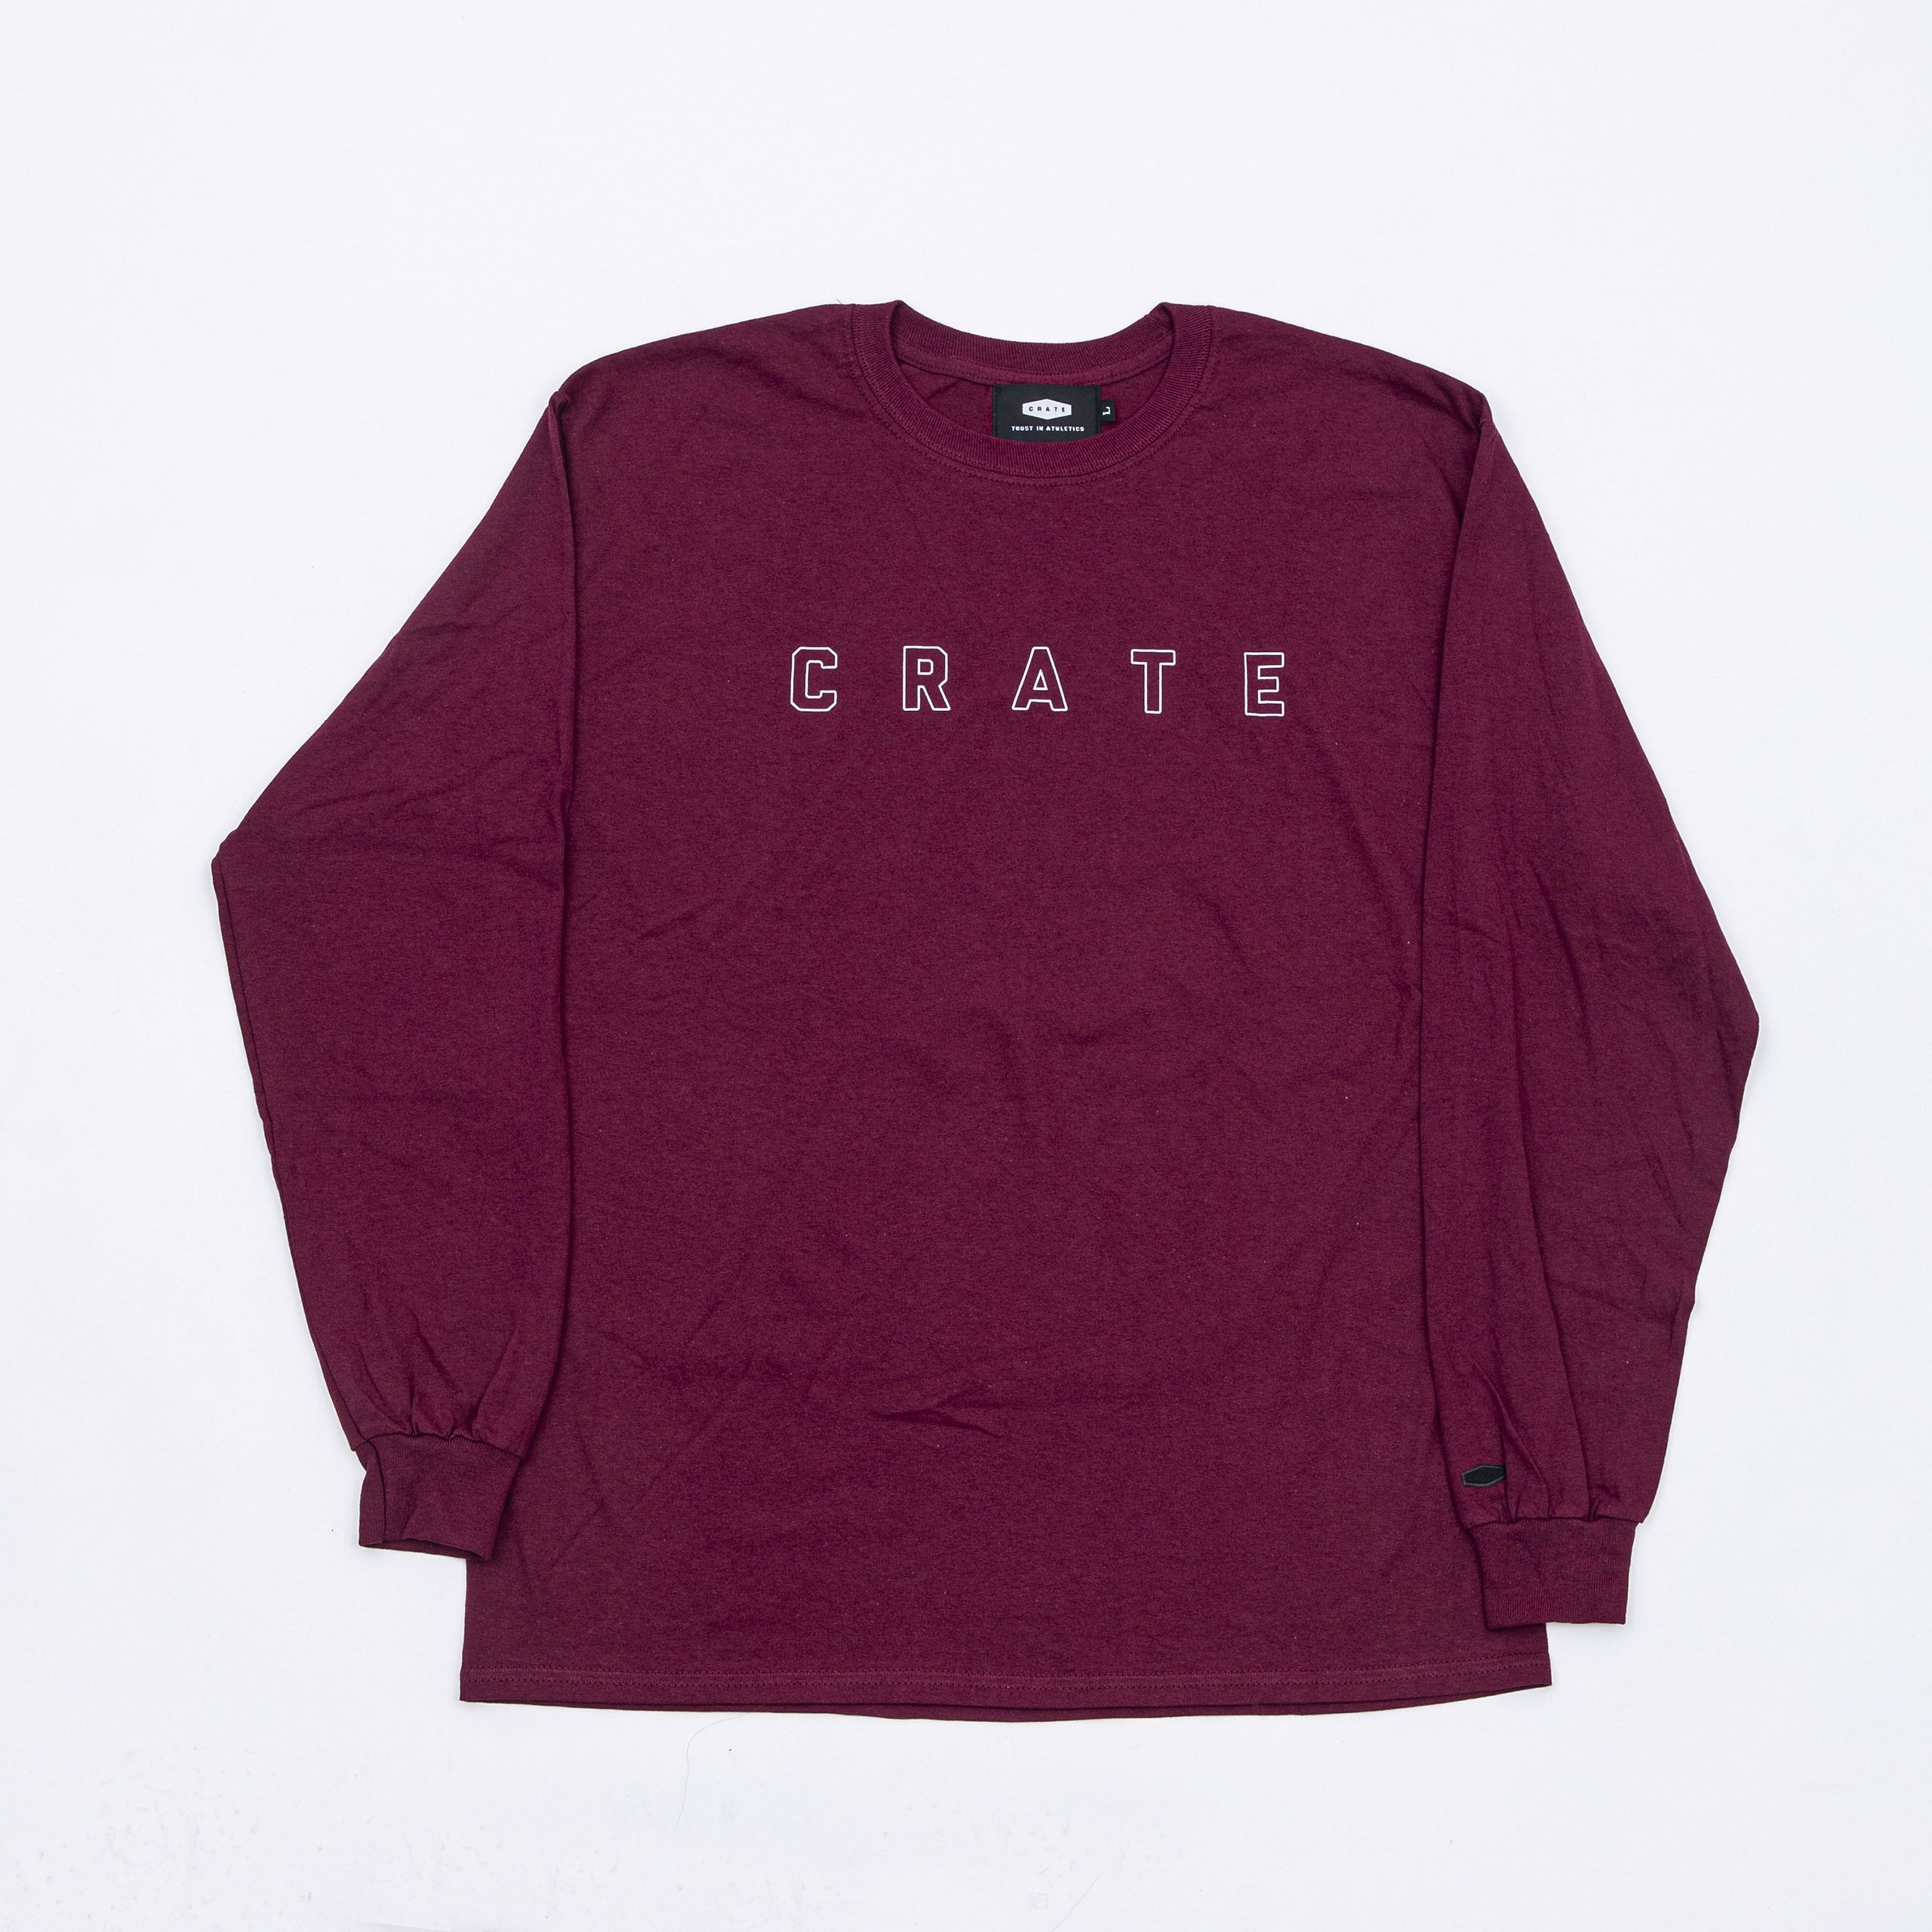 SIMPLE LOGO HOLLOW L/S Tee BURGUNDY